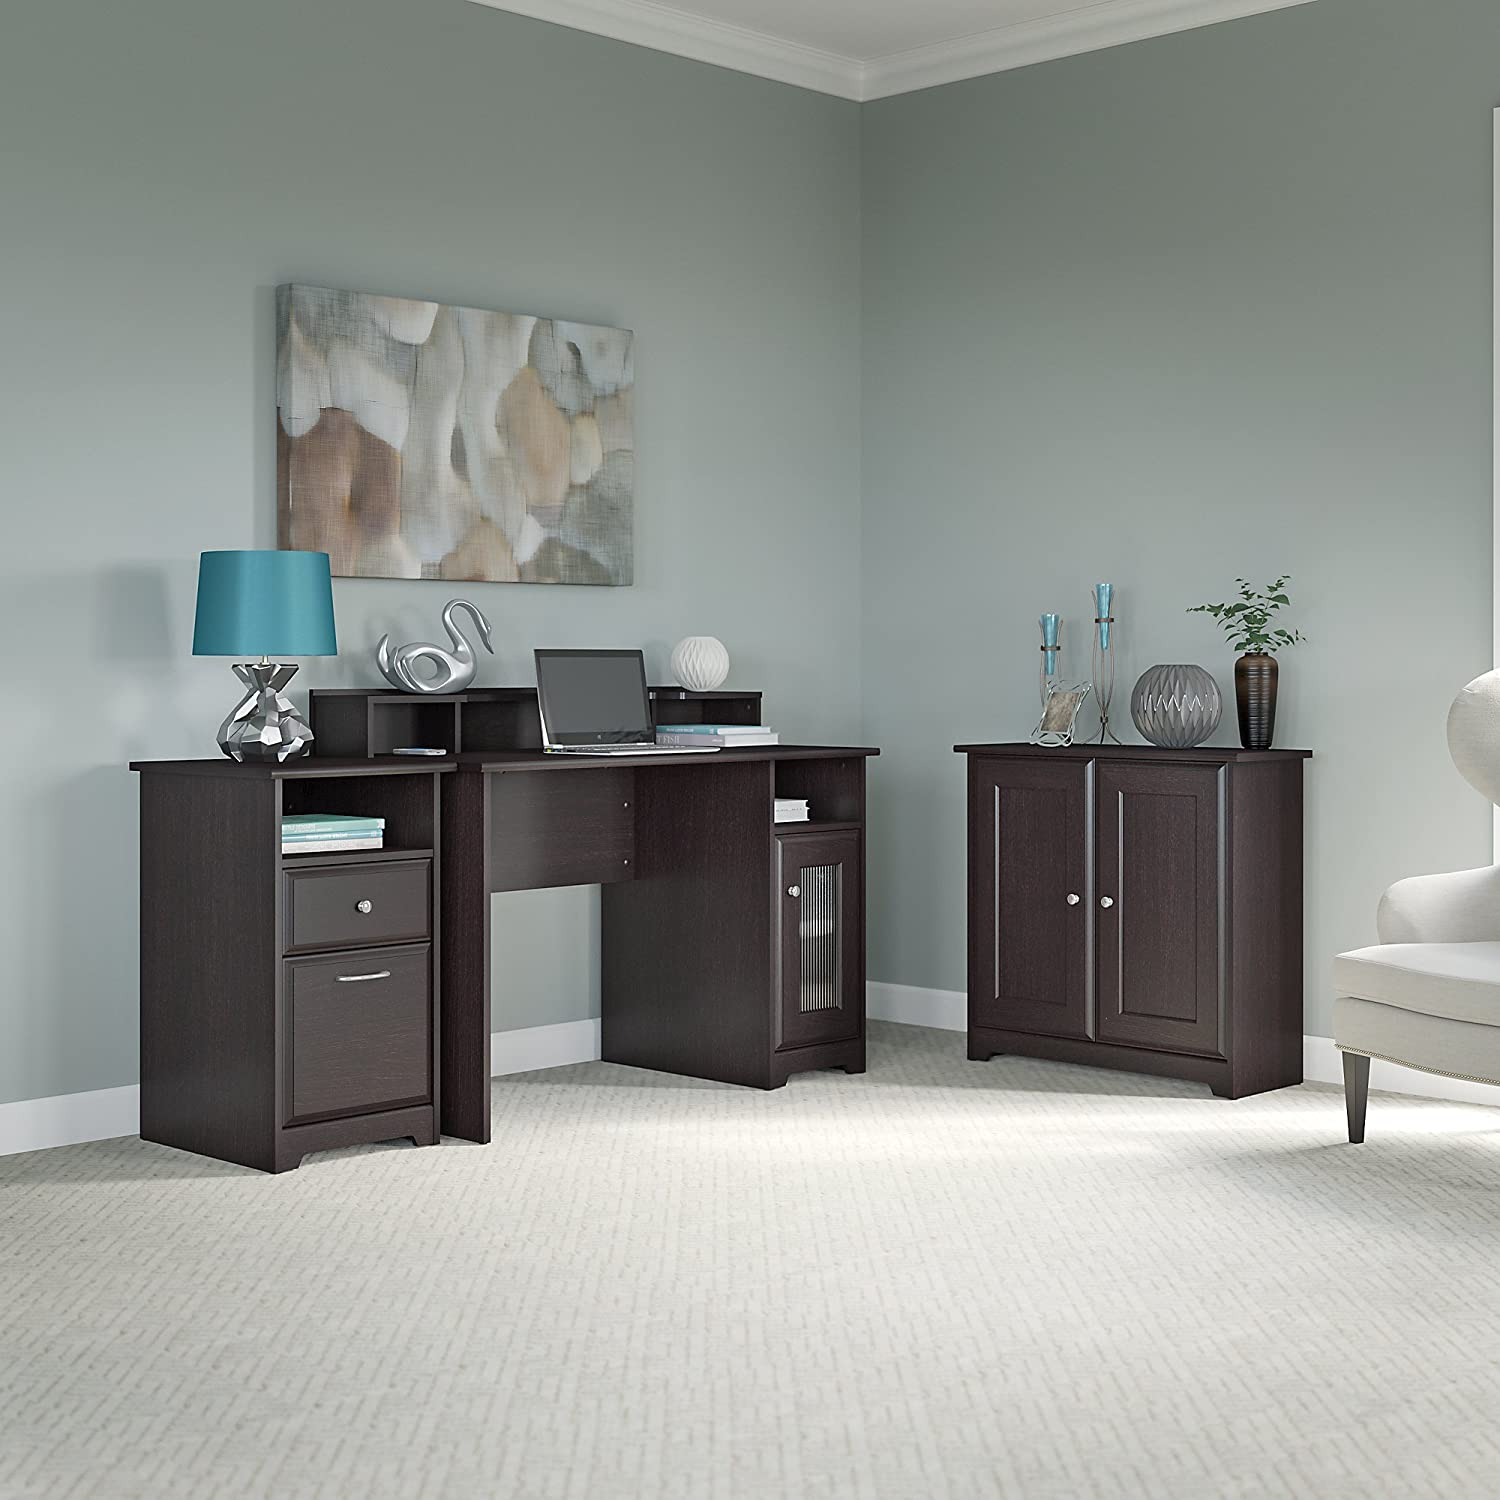 Cabot Computer Desk, Low Storage Cabinet with Doors and 2 Drawer File Cabinet